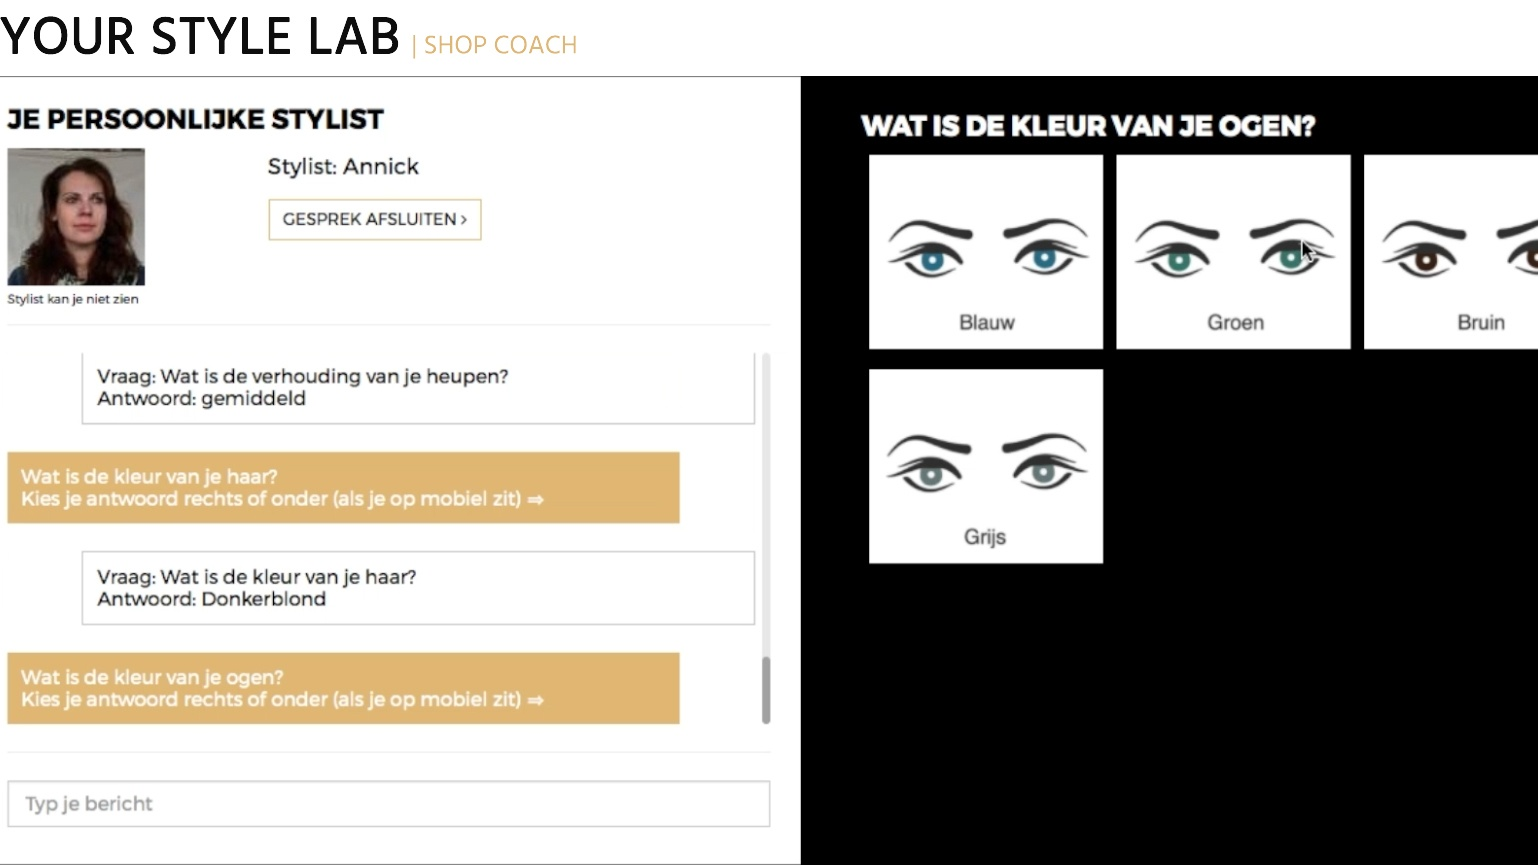 Retailers geven realtime stijladvies met tool Your Style Lab